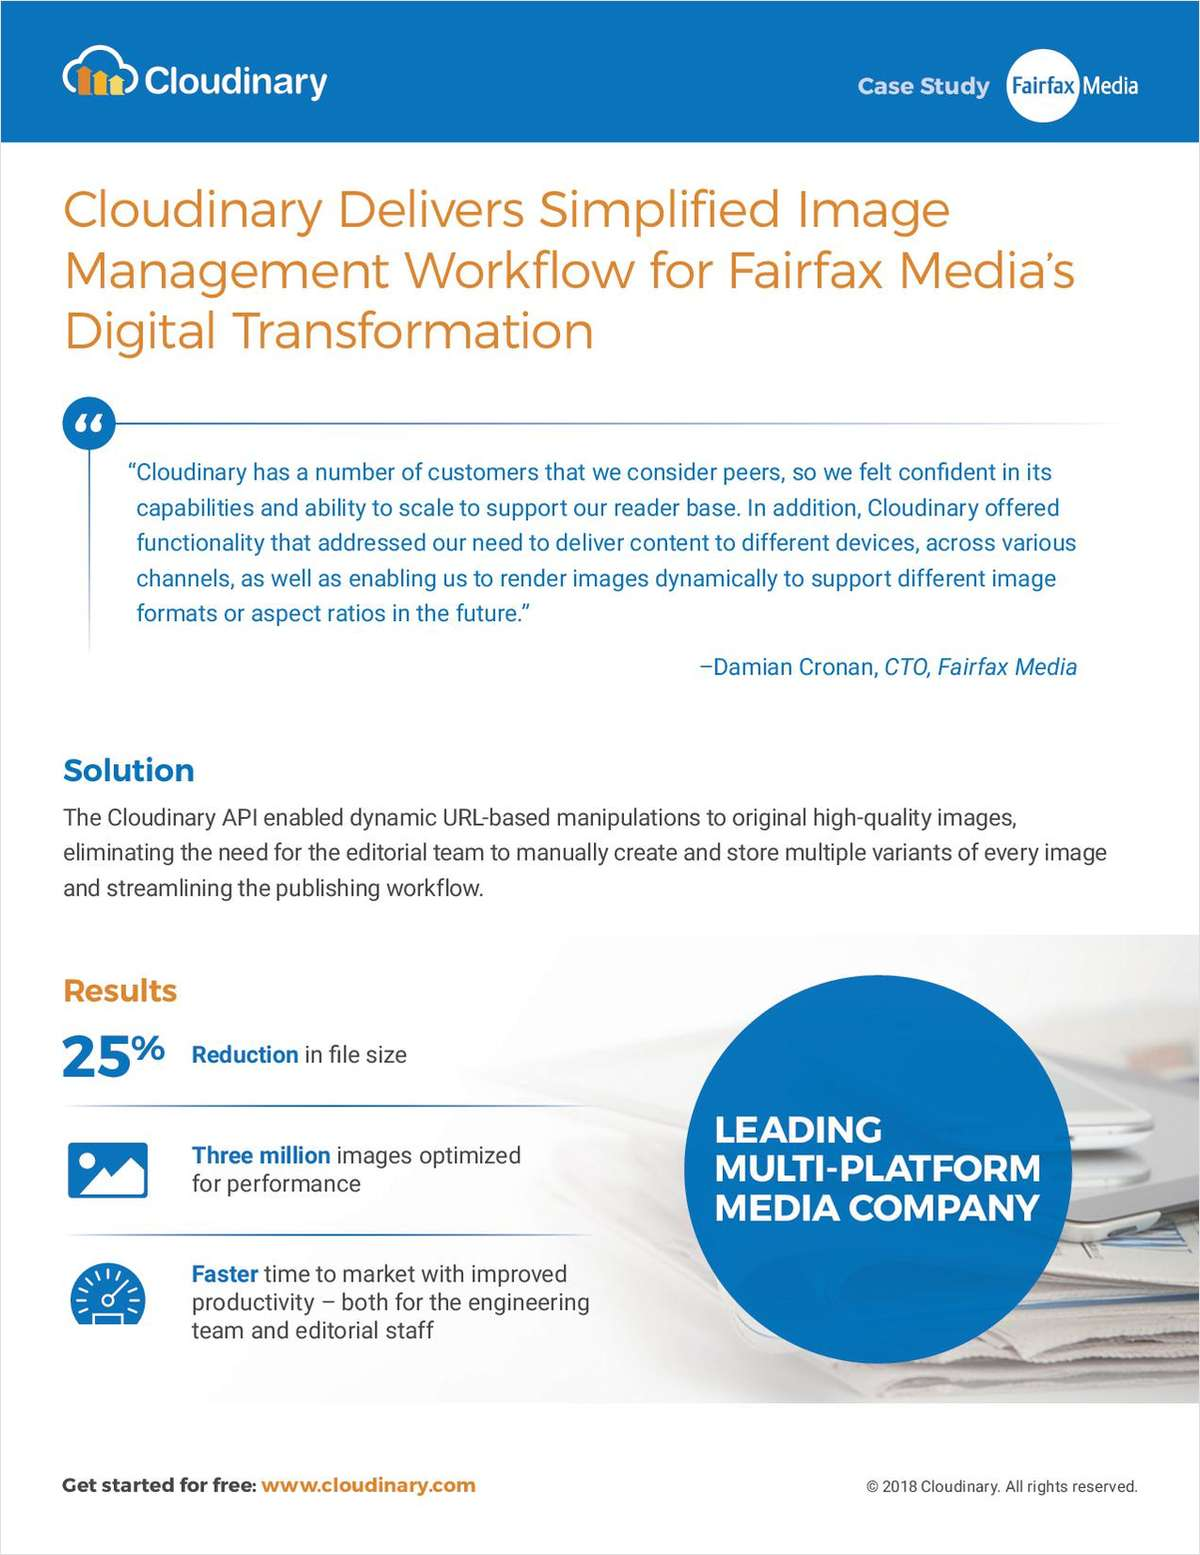 Cloudinary Delivers Simplified Image Management Workflow for Fairfax Media's Digital Transformation